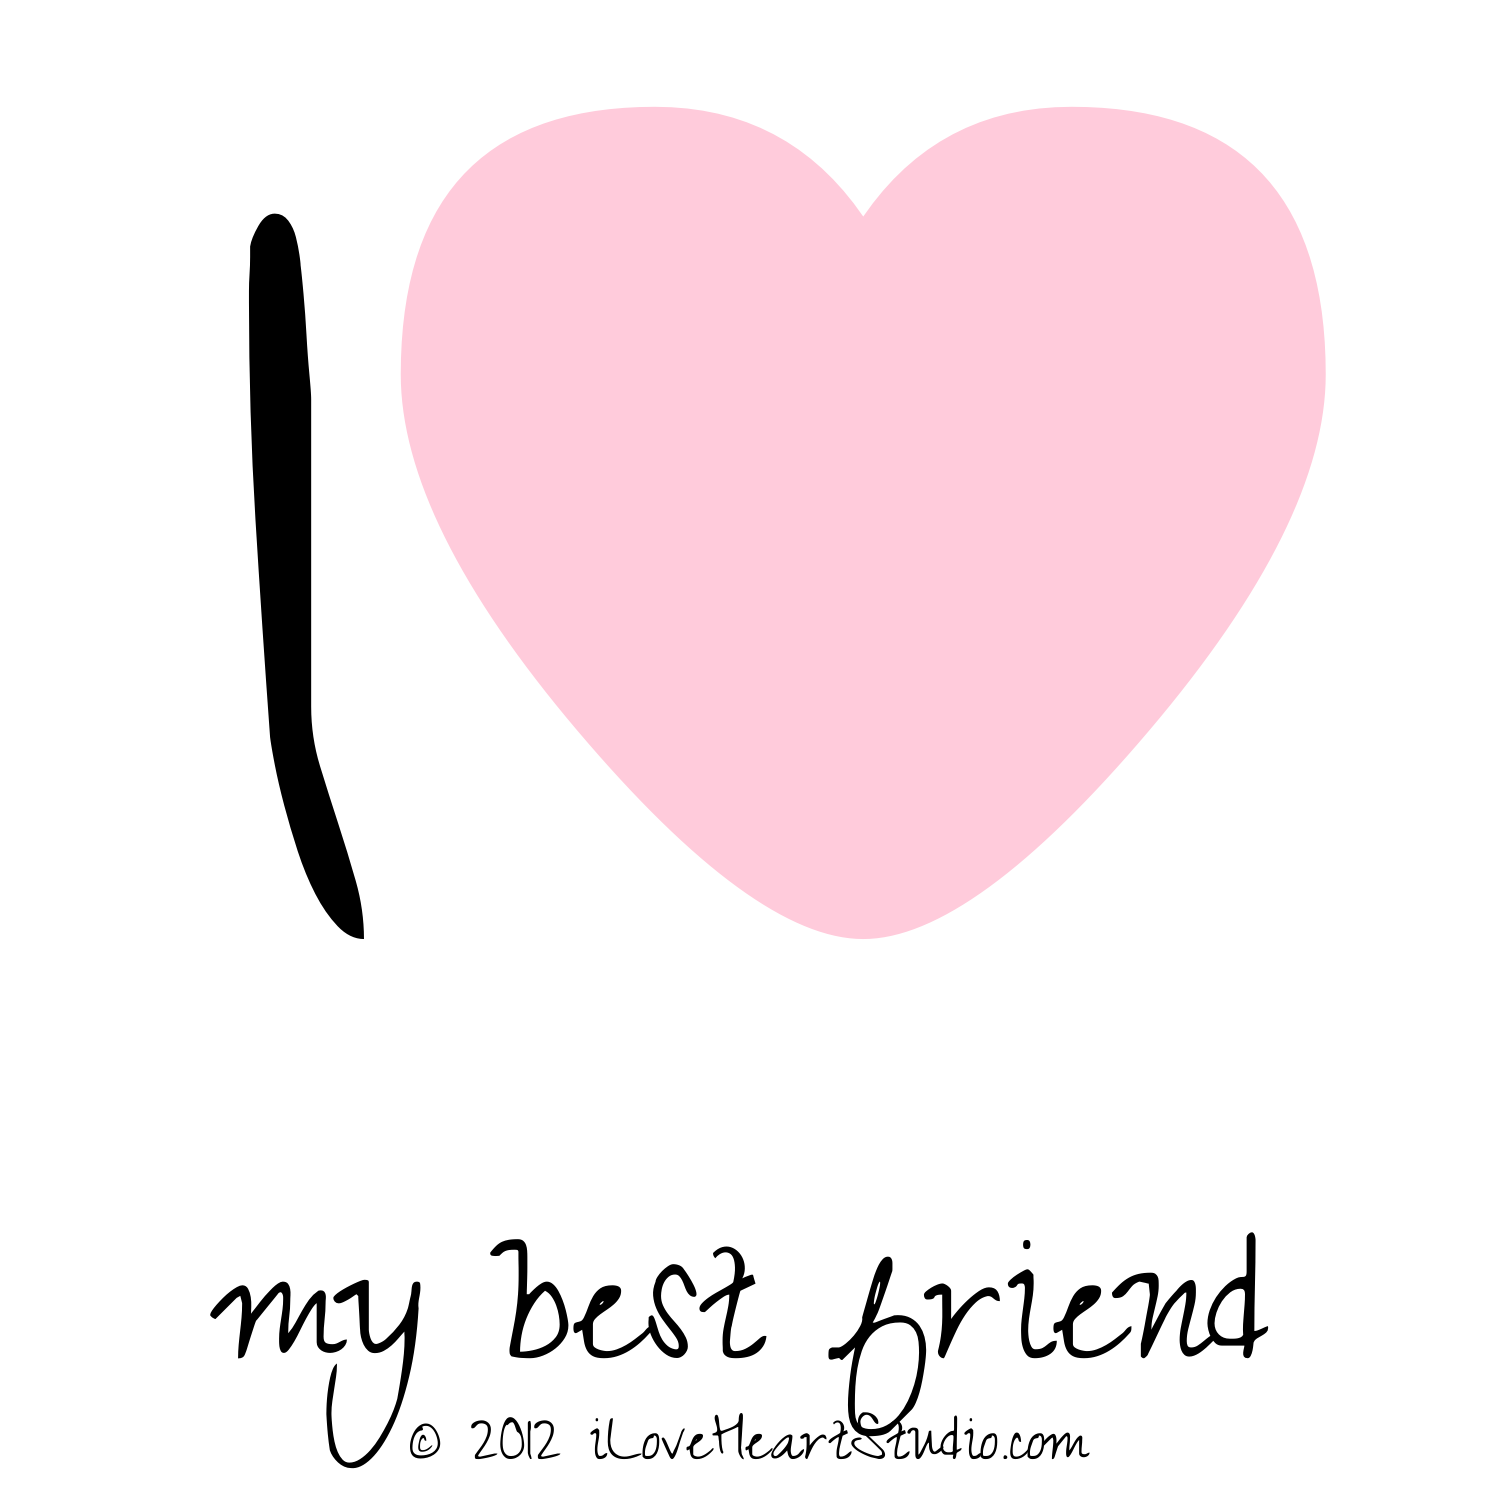 Best Friend Png Hd Transparent Best Friend Hdpng Images Pluspng